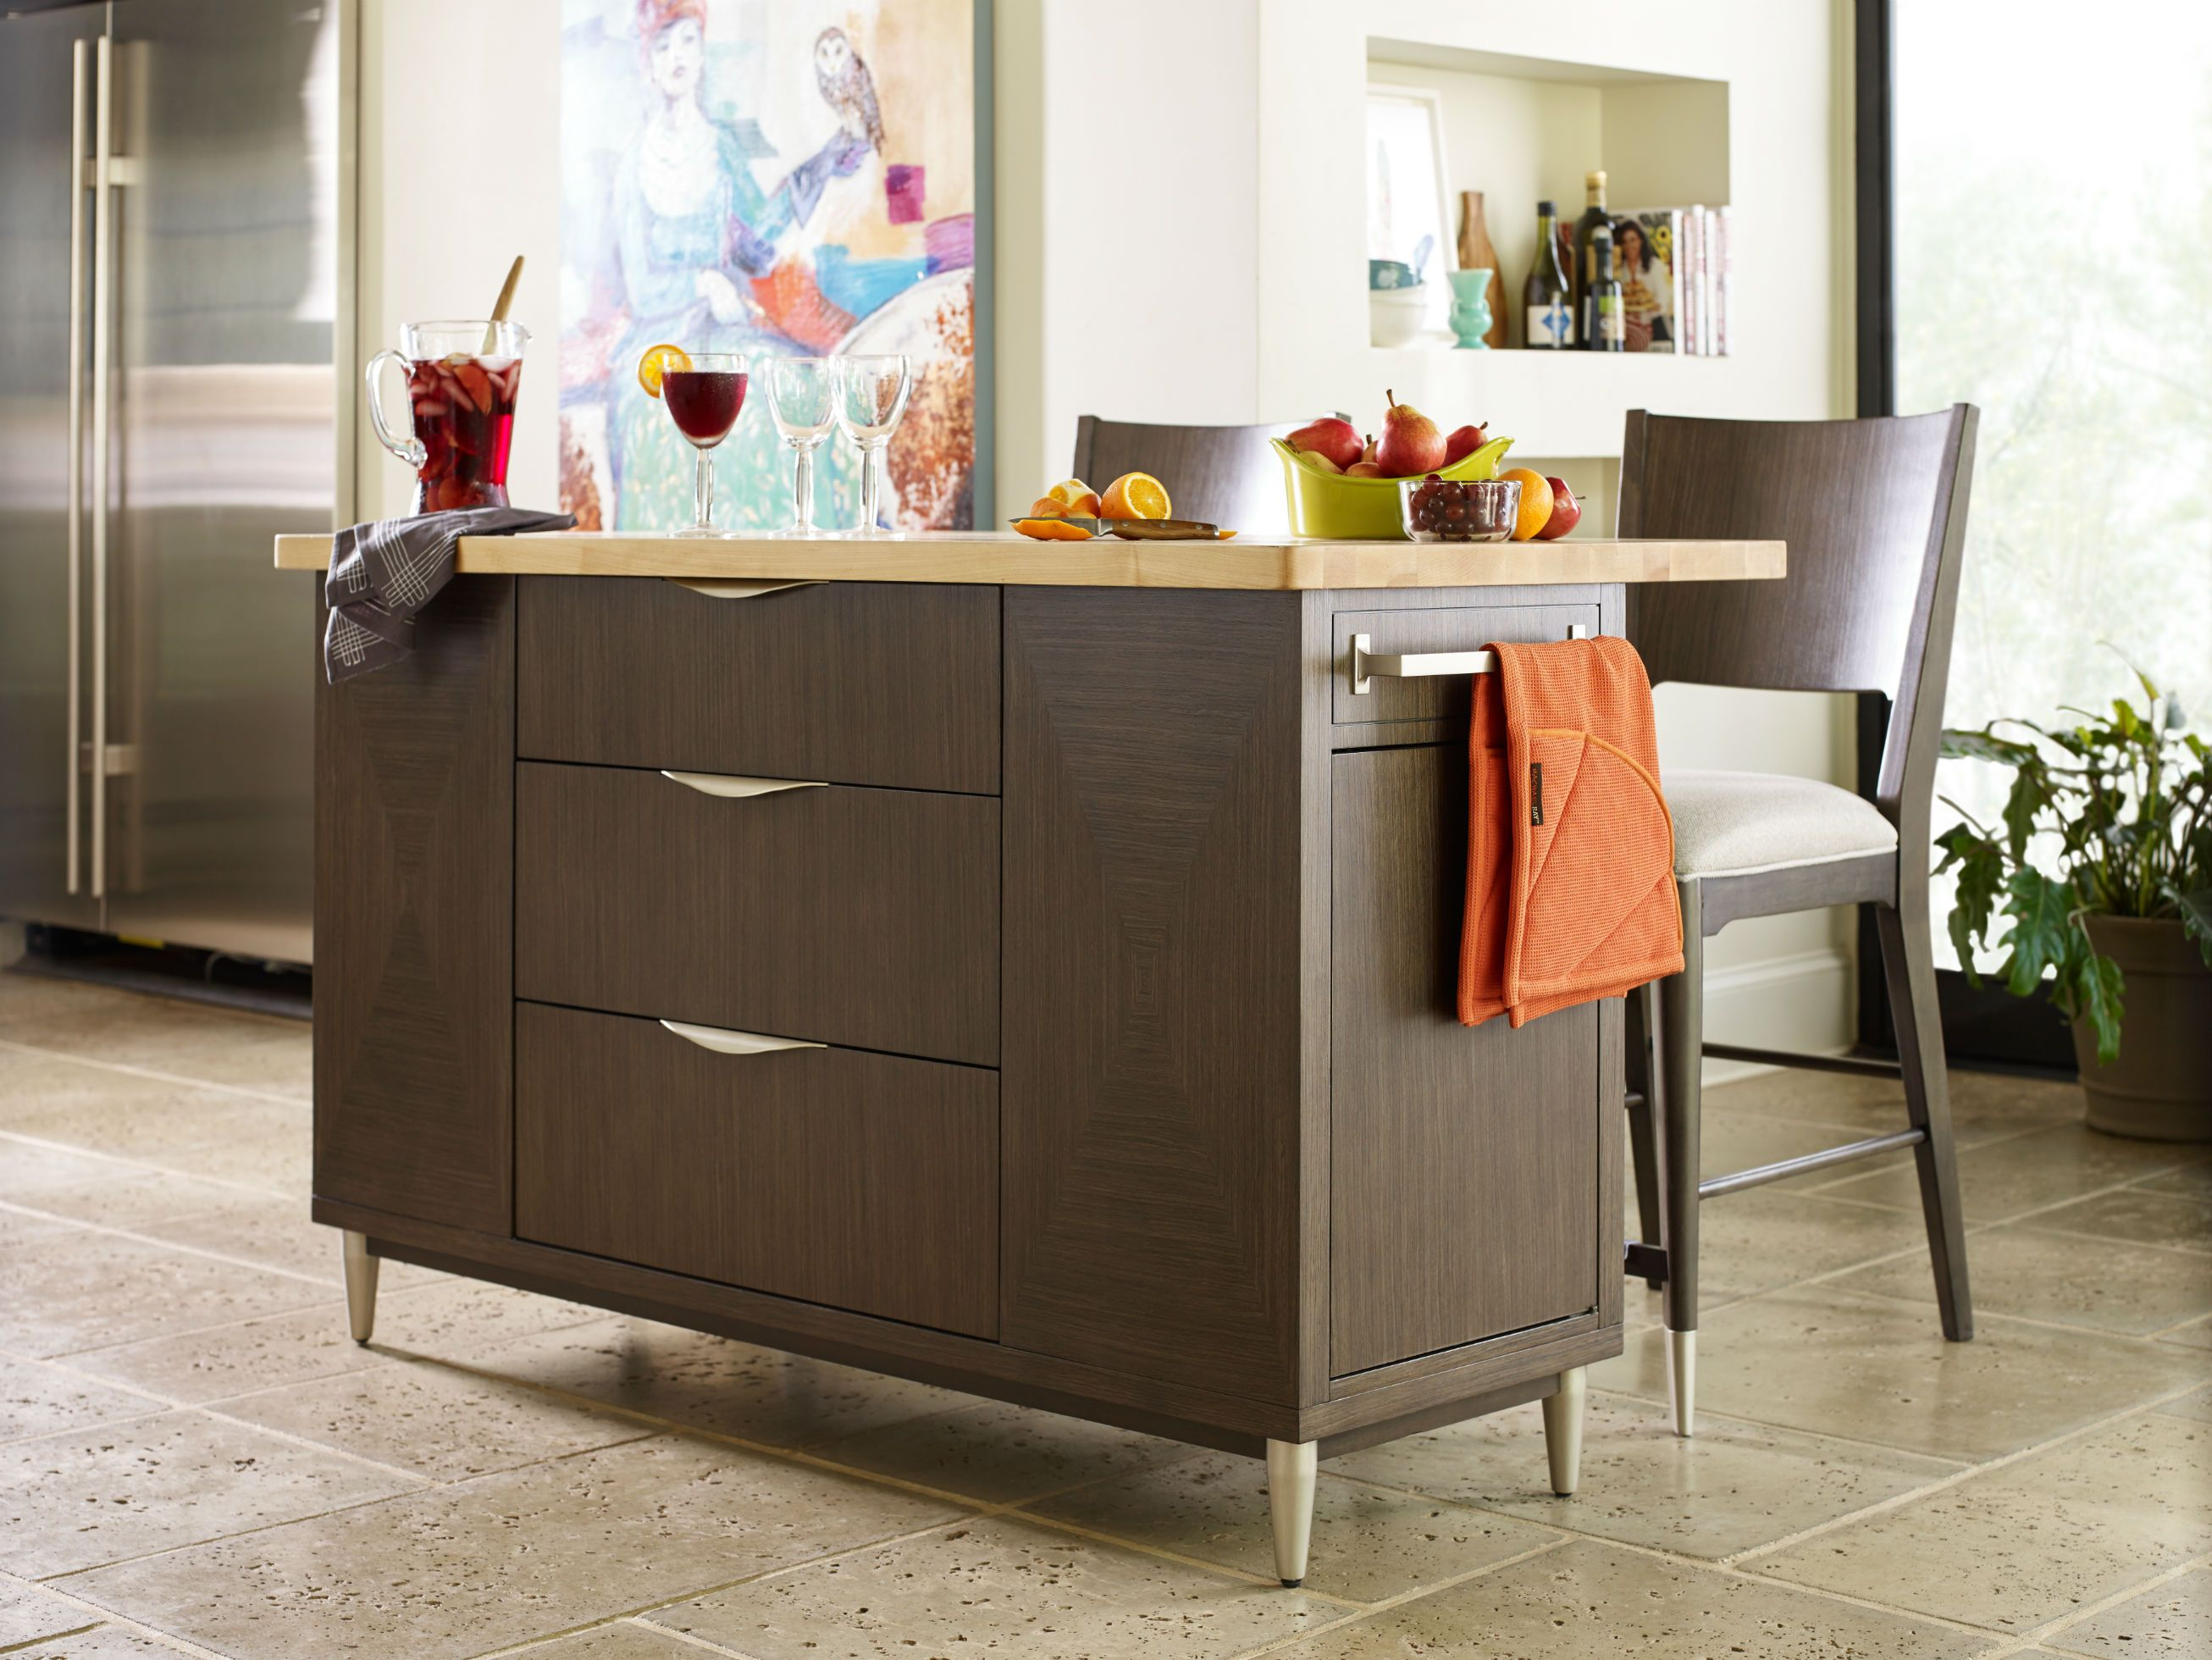 From The Soho Collection In Rachael Ray Home Line Gahs Rachaelray